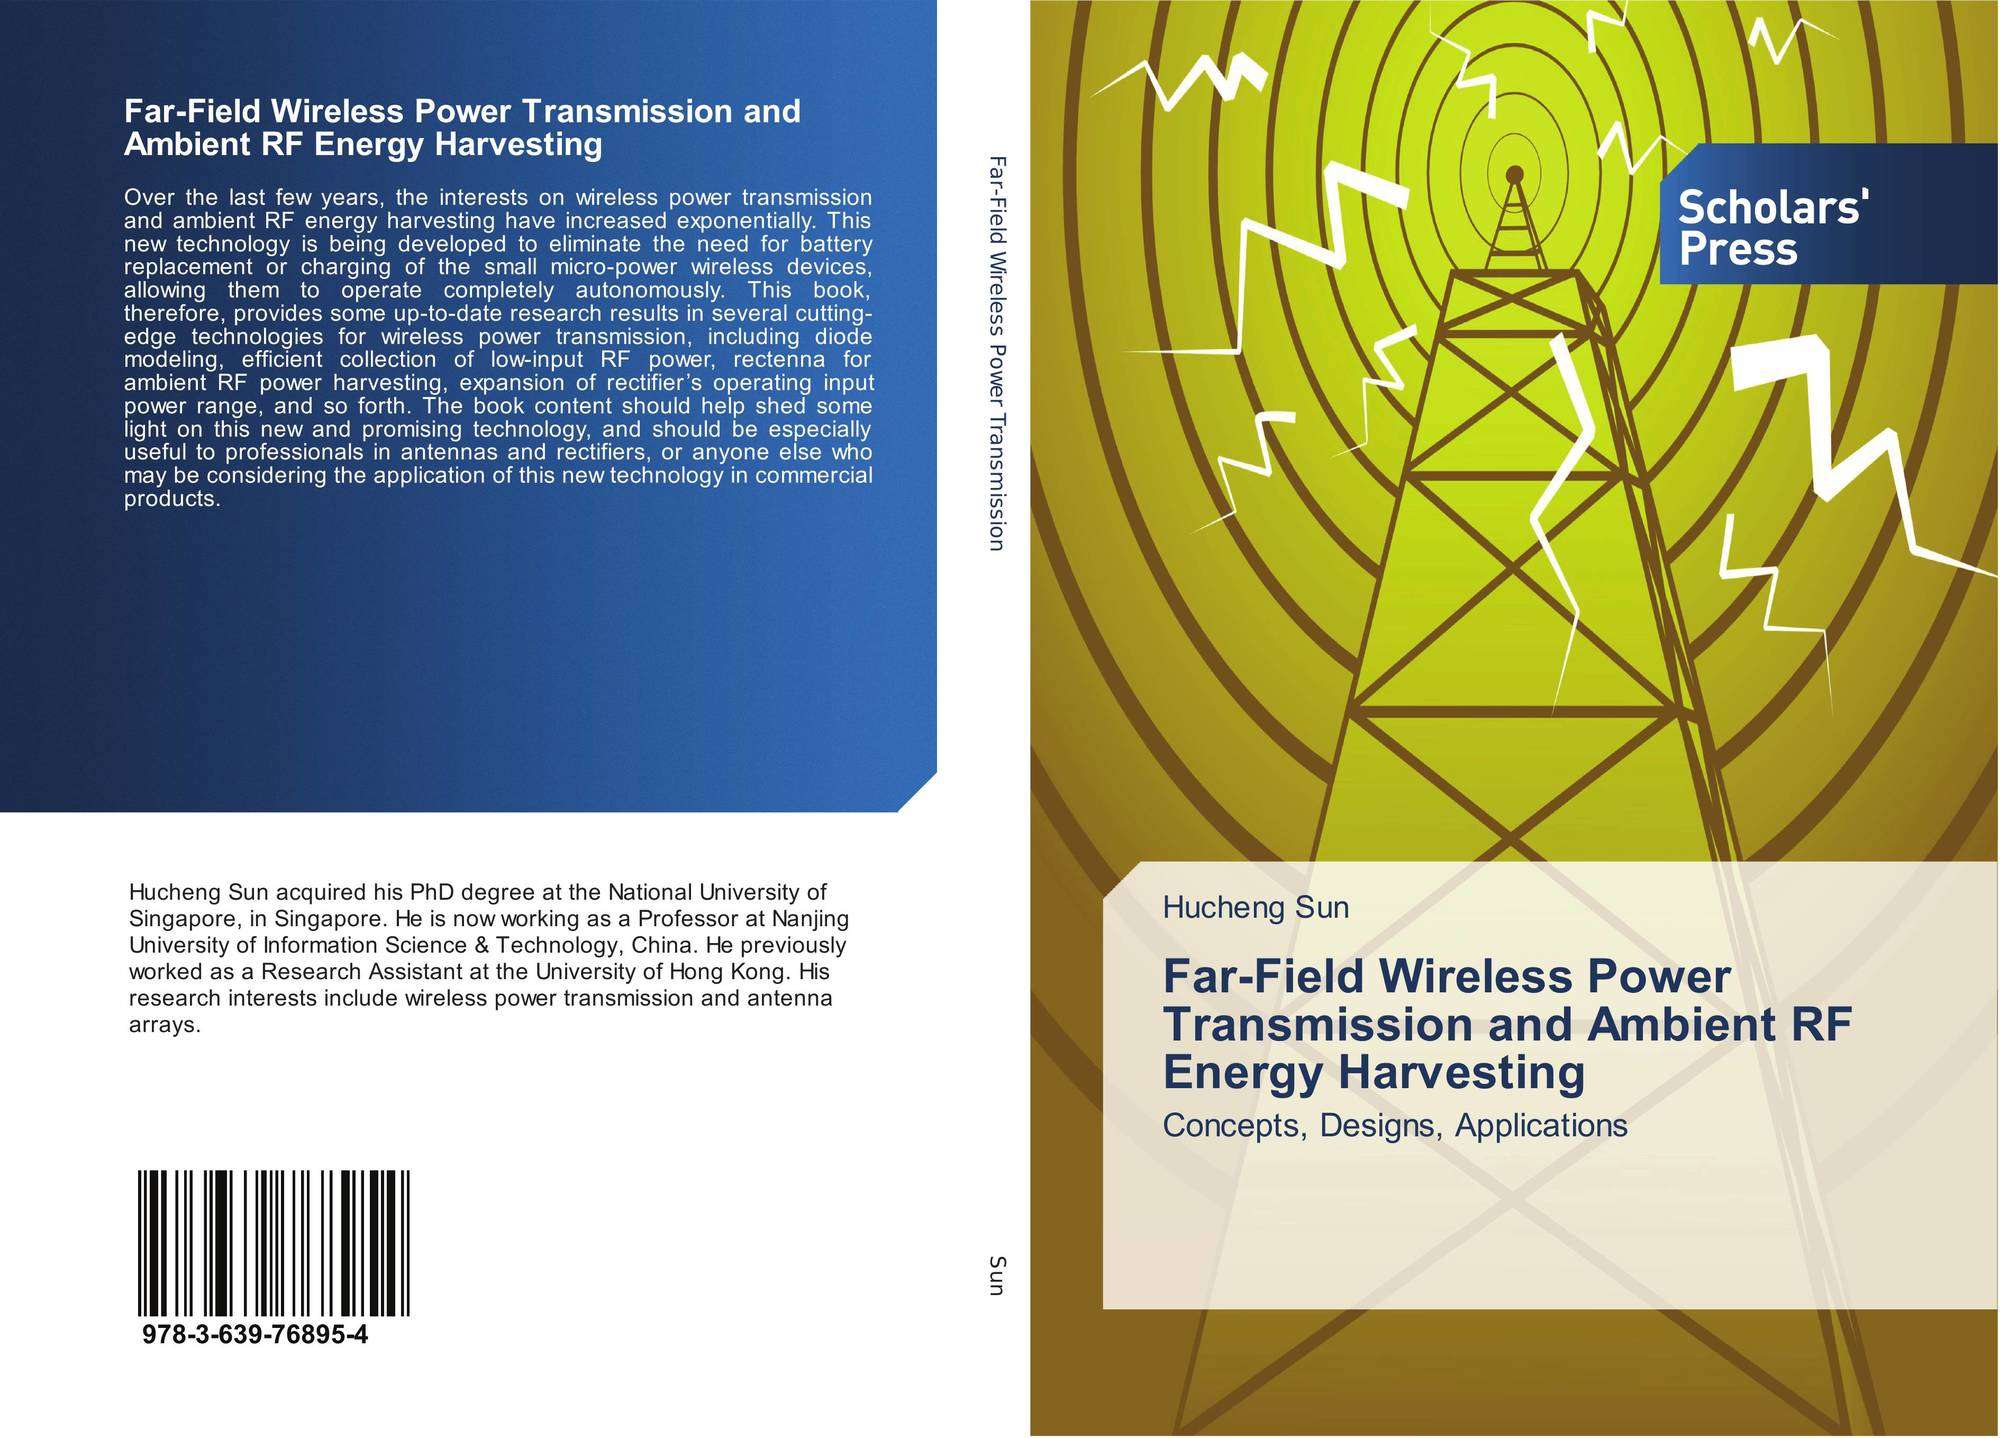 Far-Field Wireless Power Transmission and Ambient RF Energy